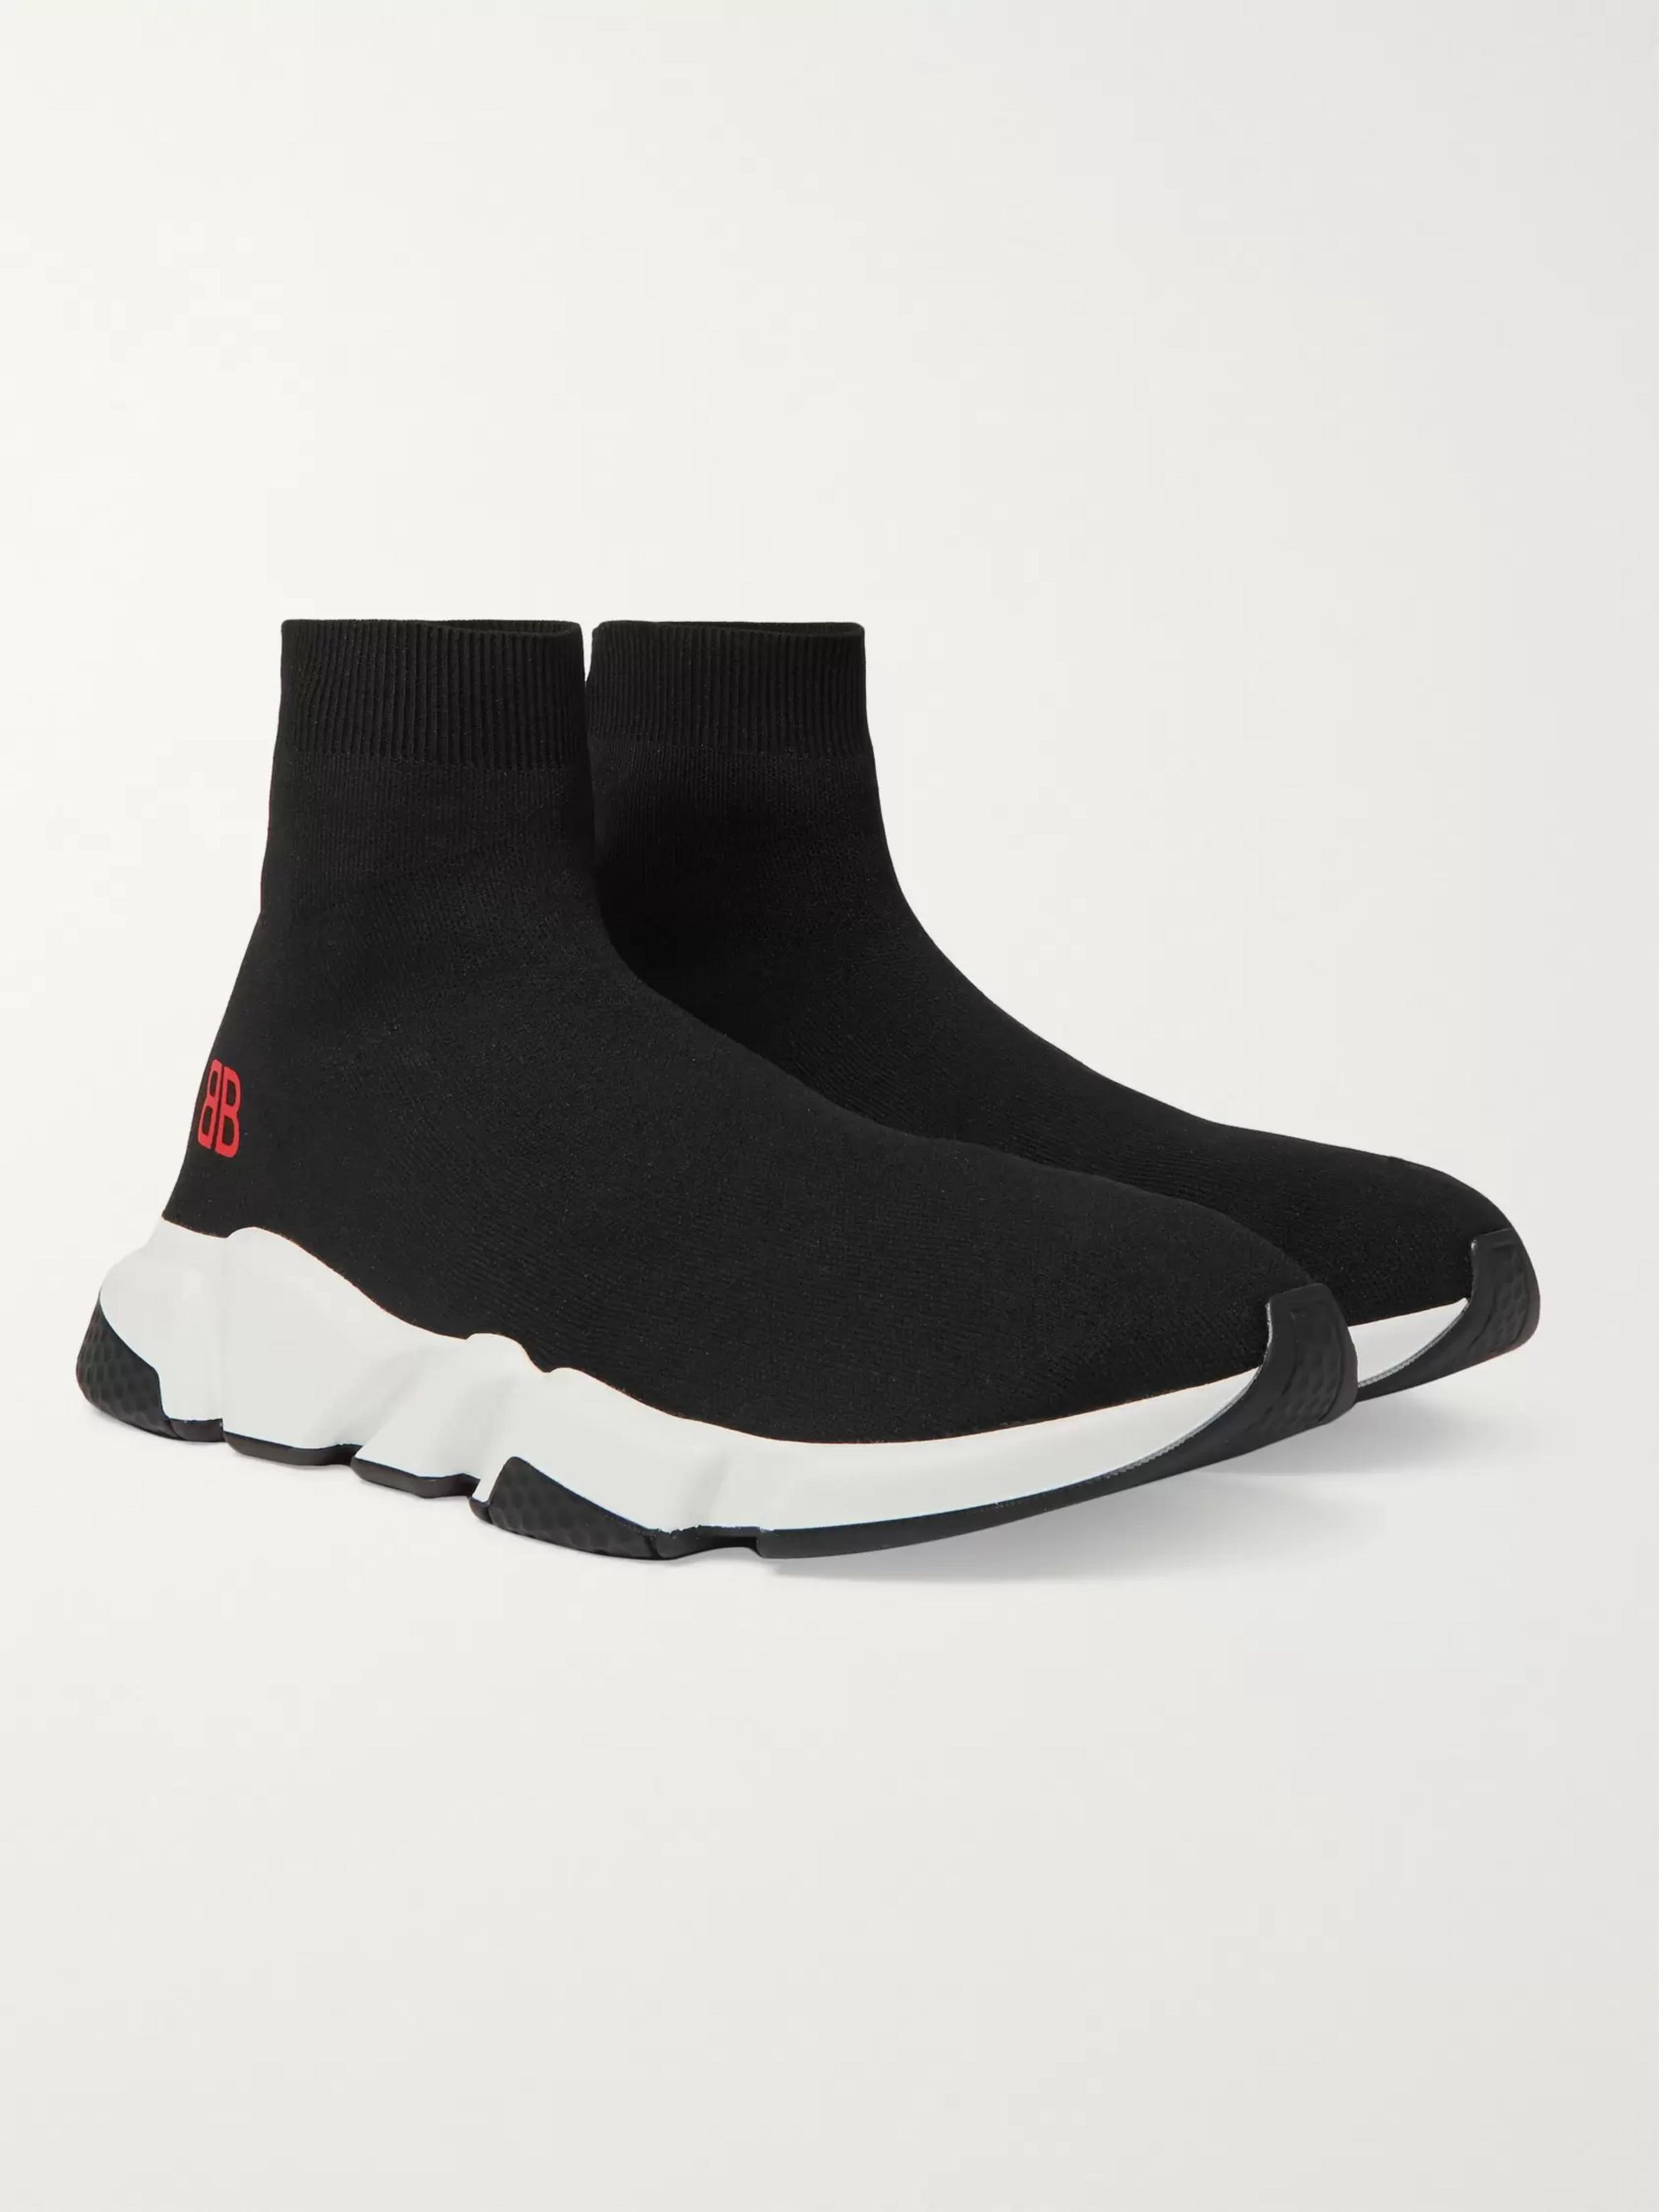 balenciaga speed sock black